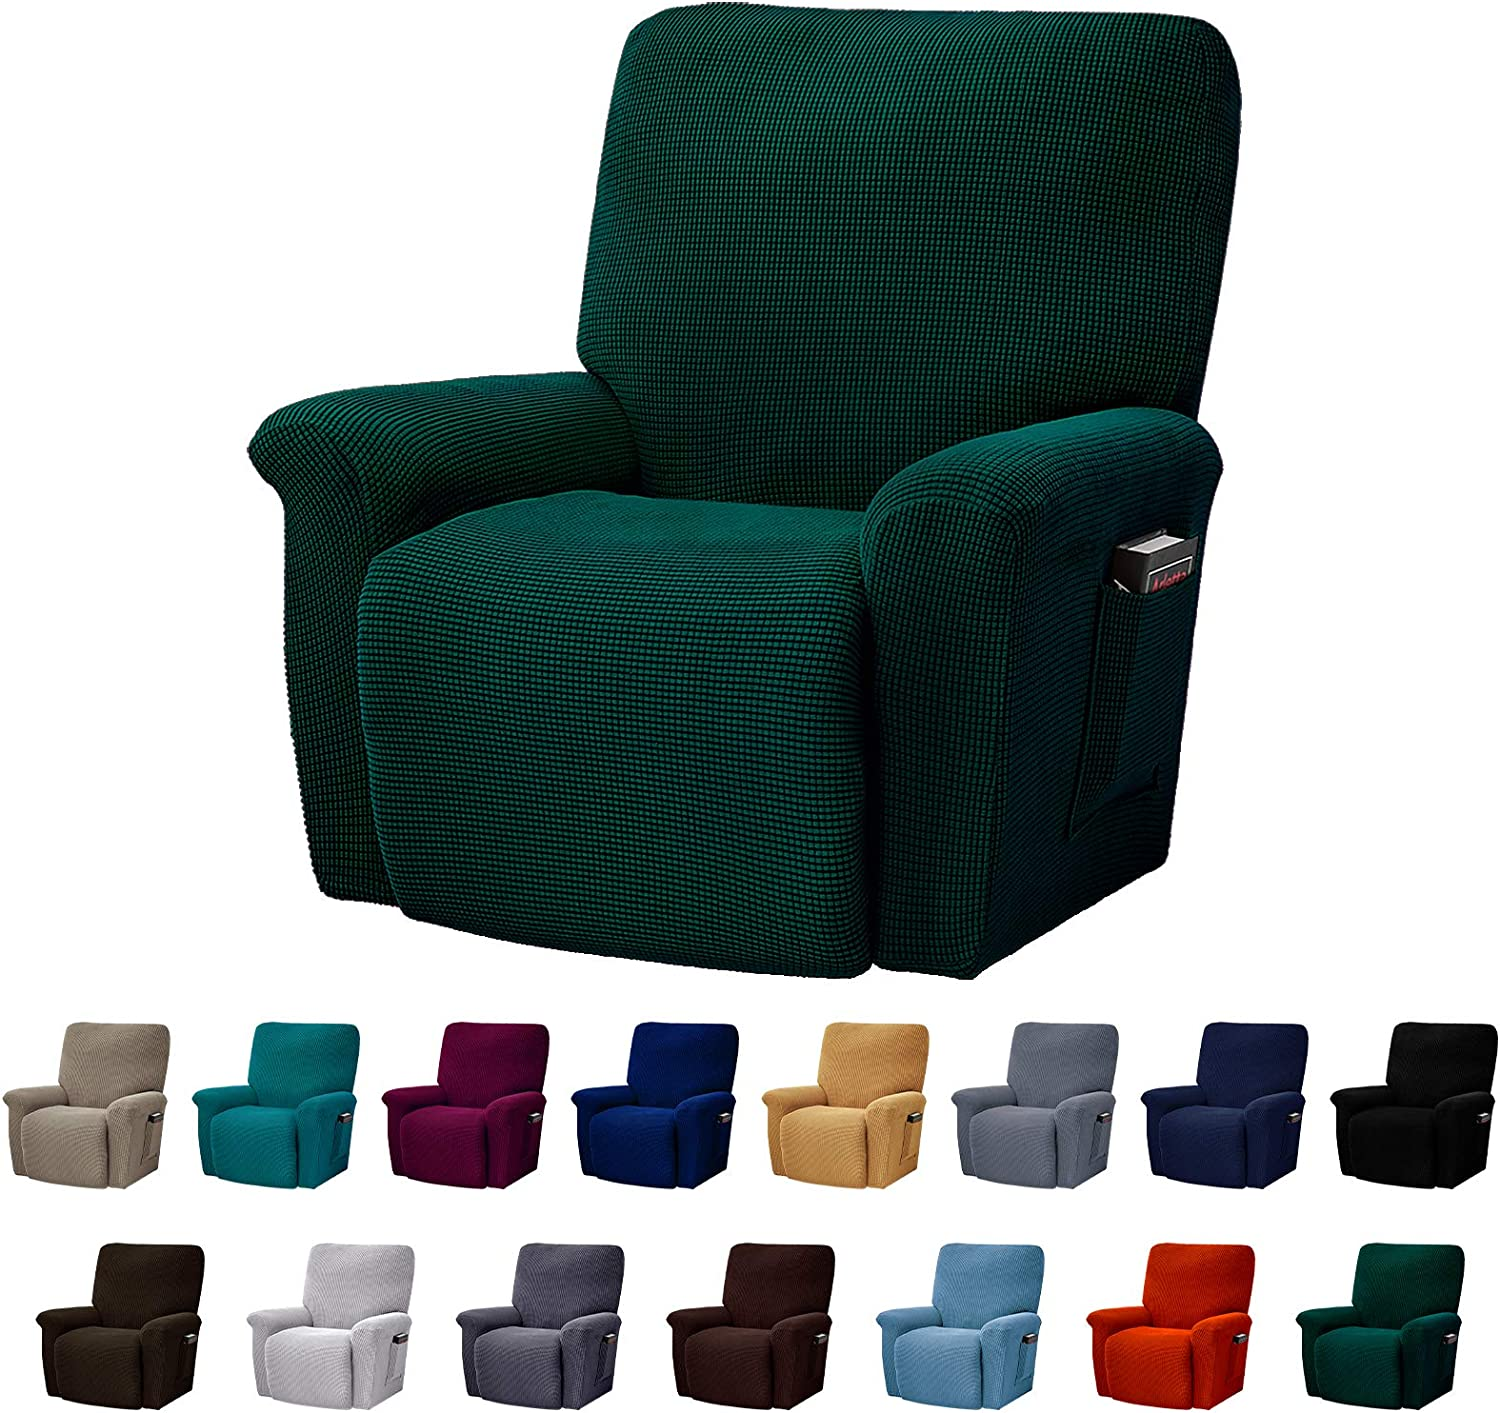 AlGaiety Stretch Recliner Slipcover Sofa Cover 4 Separate Pieces/1 Set Spandex Jacquard Fabric Furniture Protector Couch Cover with Elastic Bottom for Living Room(Recliner,Hunter)